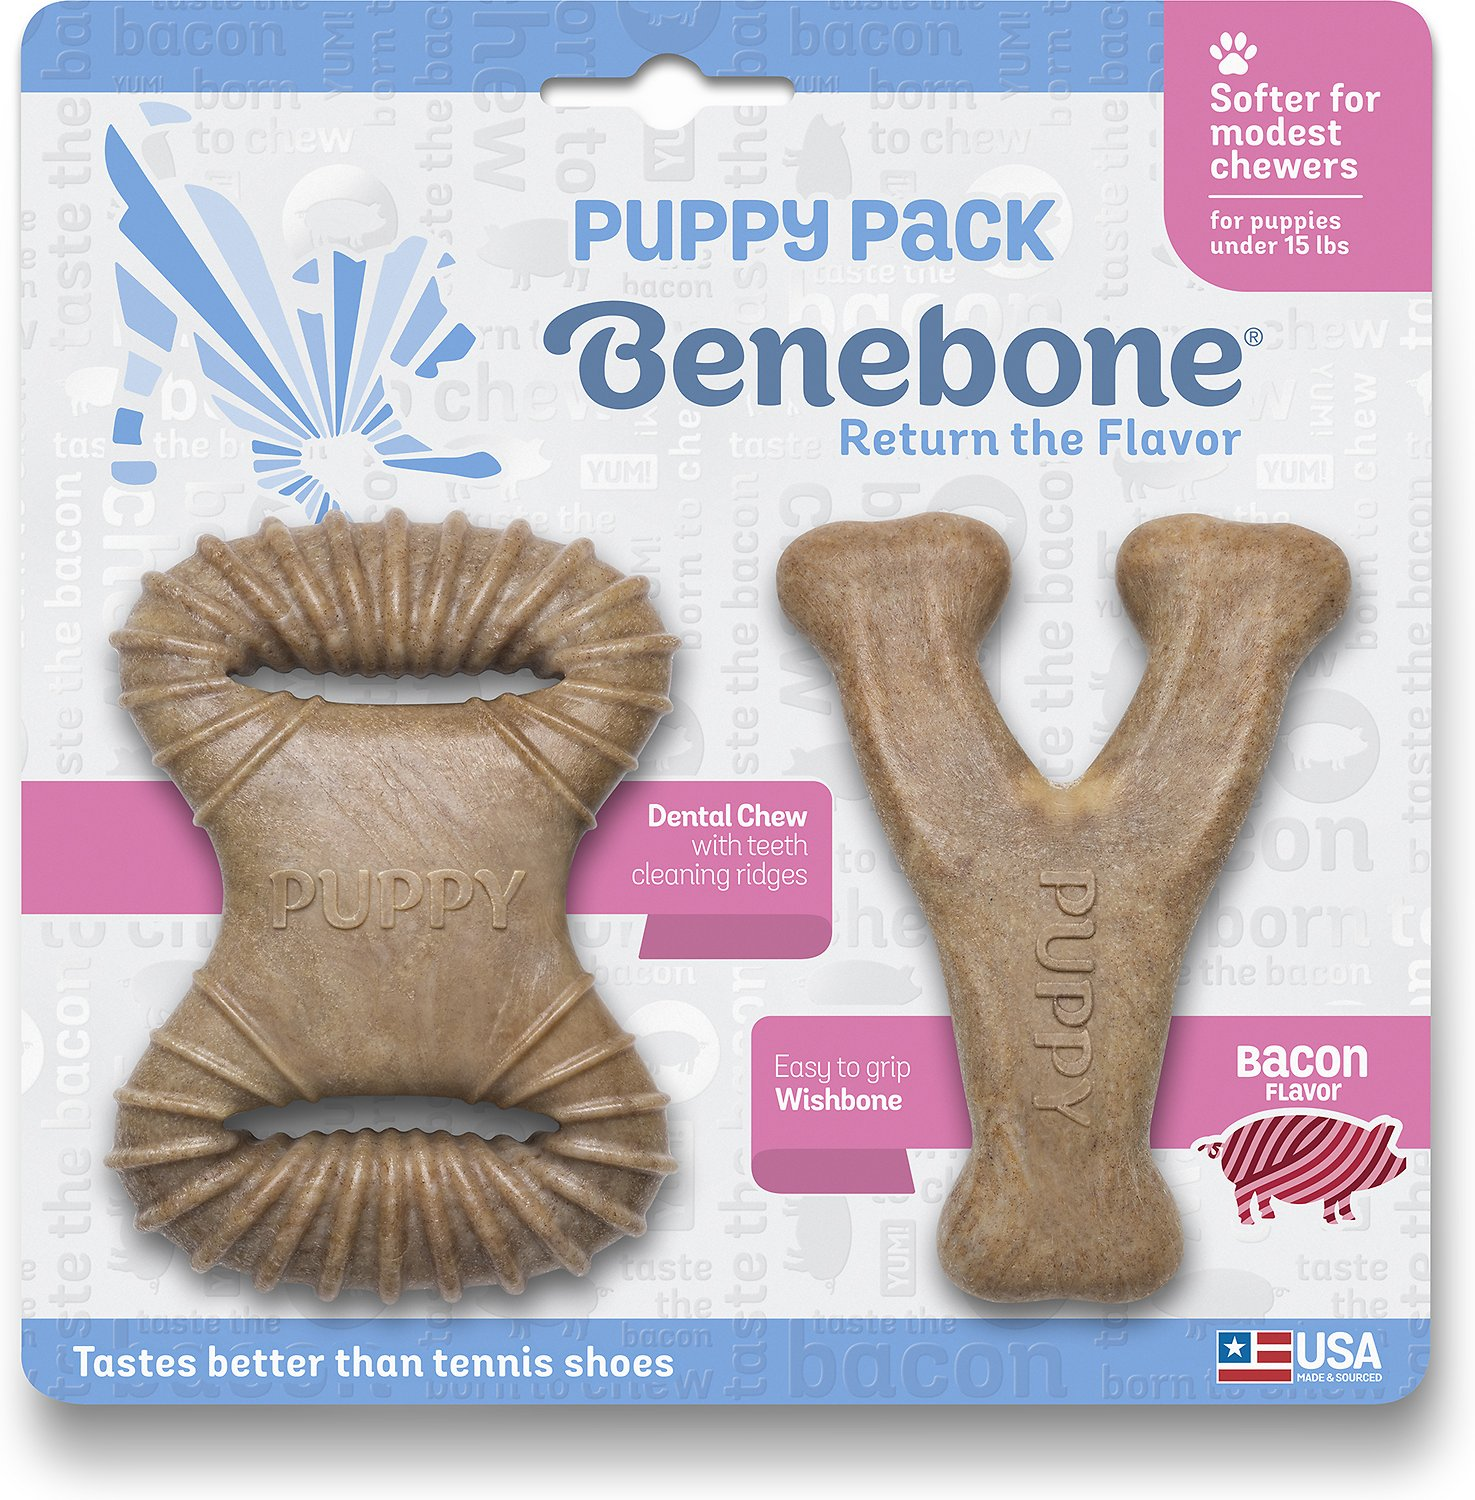 Benebone Puppy Pack Bacon Flavor Puppy Chew Toy, 2-count